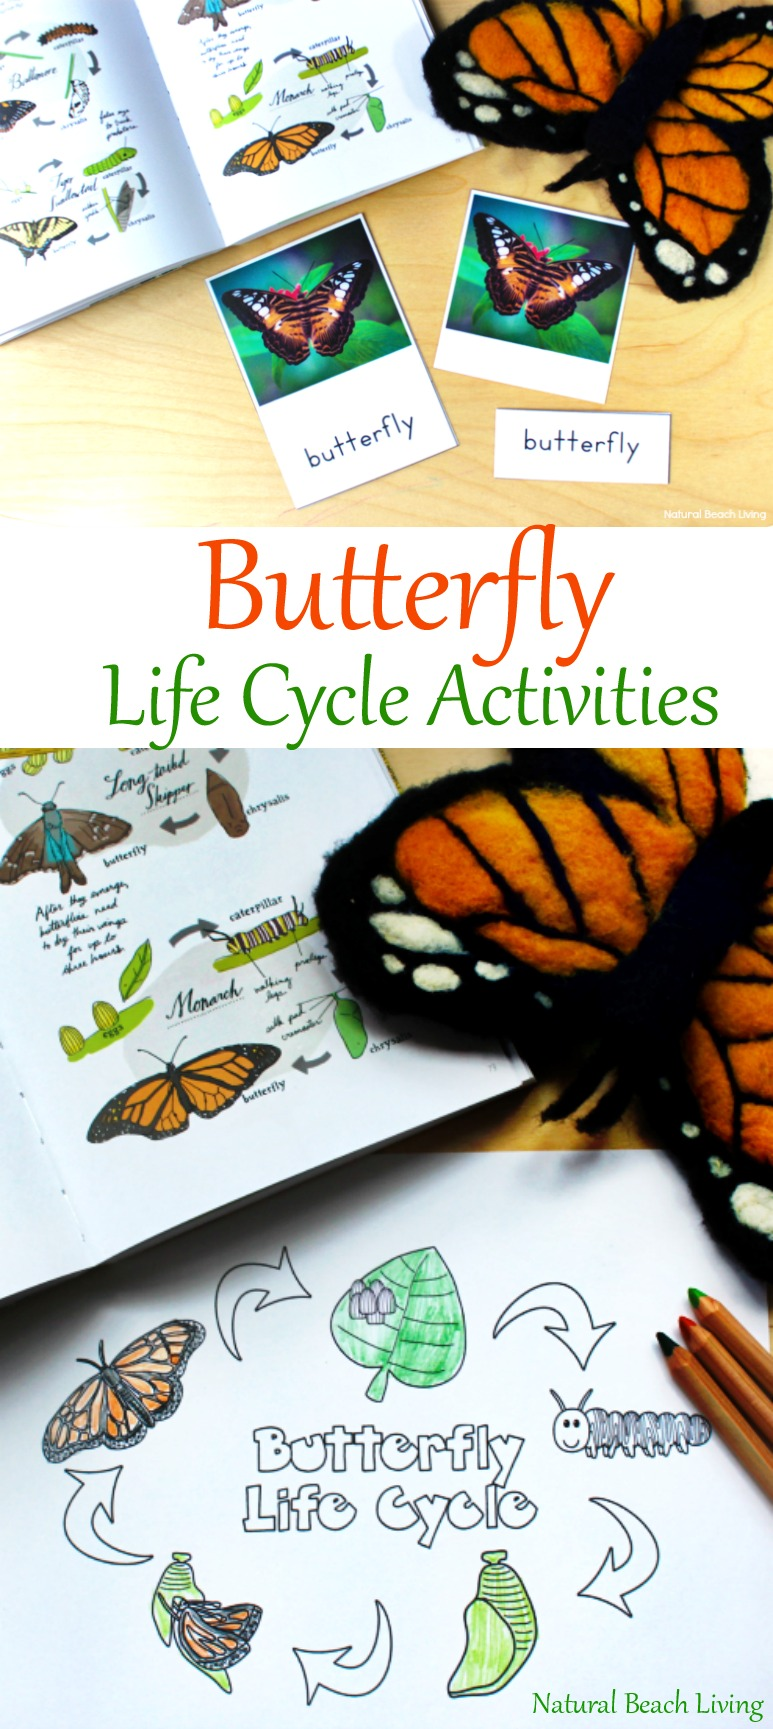 The Best Butterfly Life Cycle Activities for Kids - Natural Beach Living